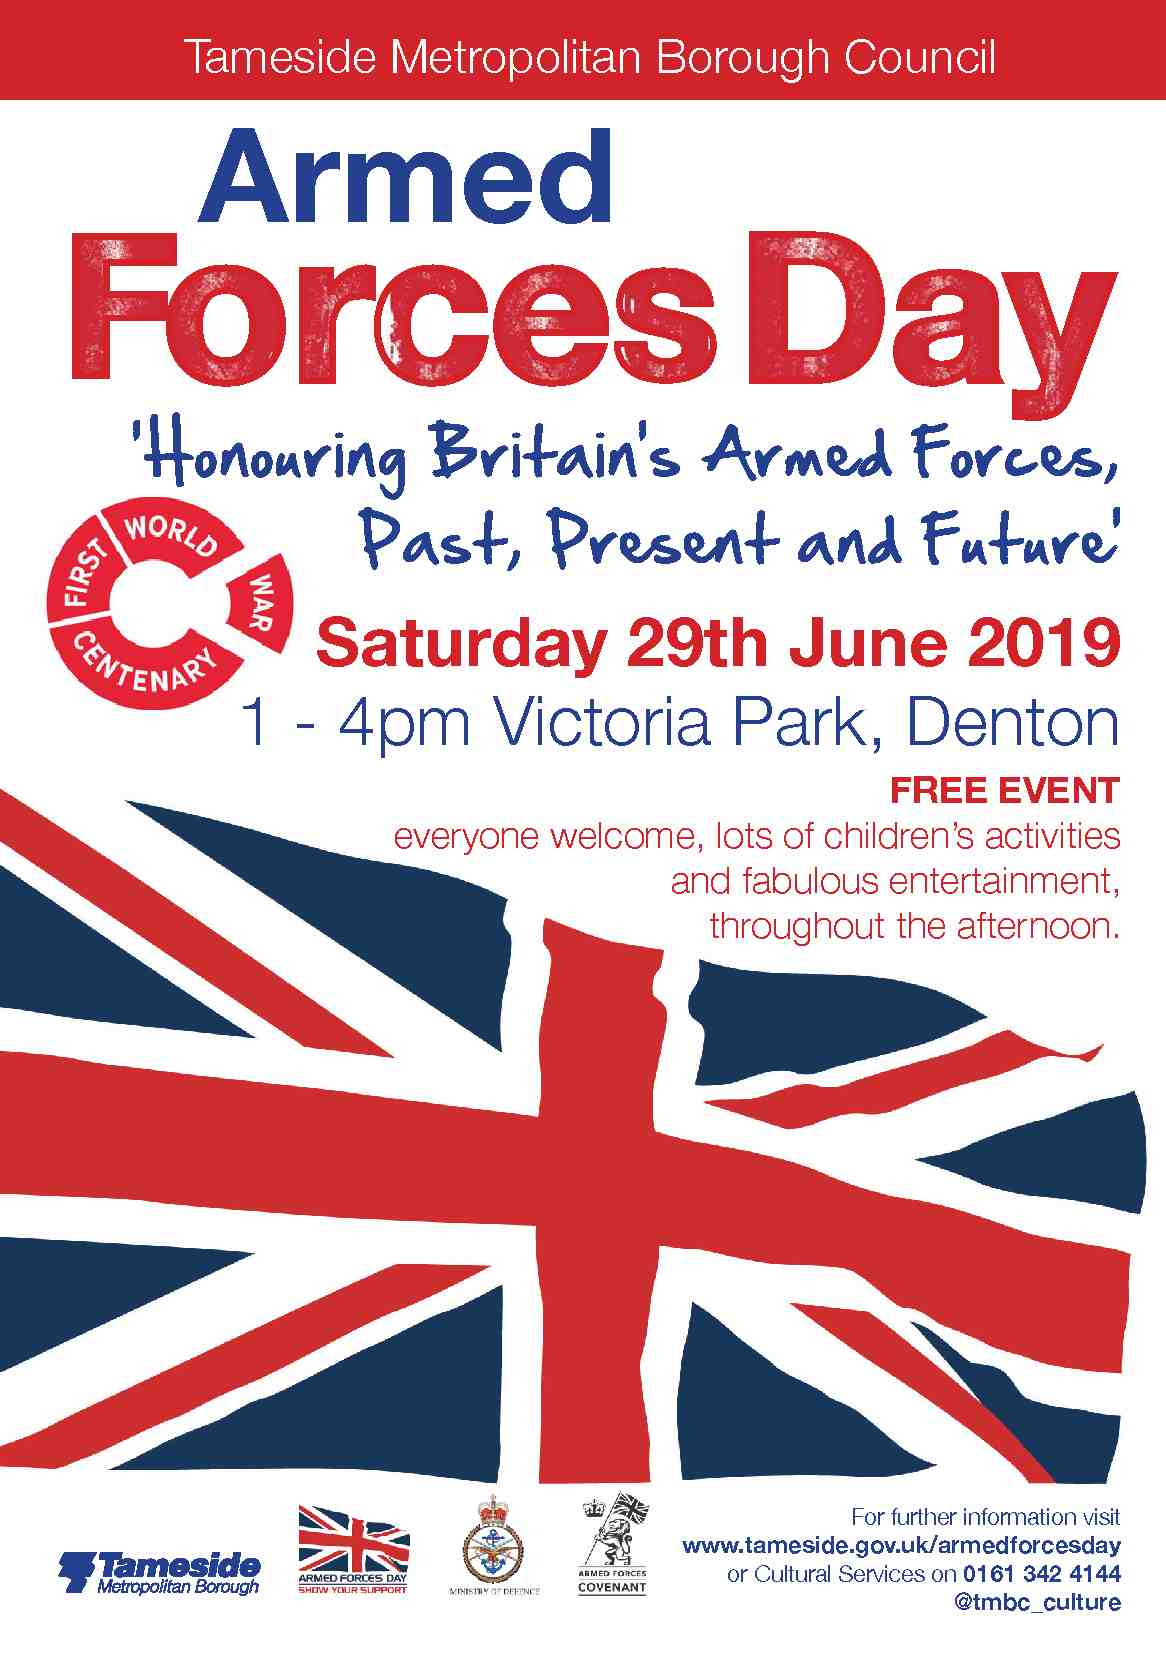 Armed Forces Day poster. Saturday 29th June 2019. 1 to 4pm Victoria Park Denton